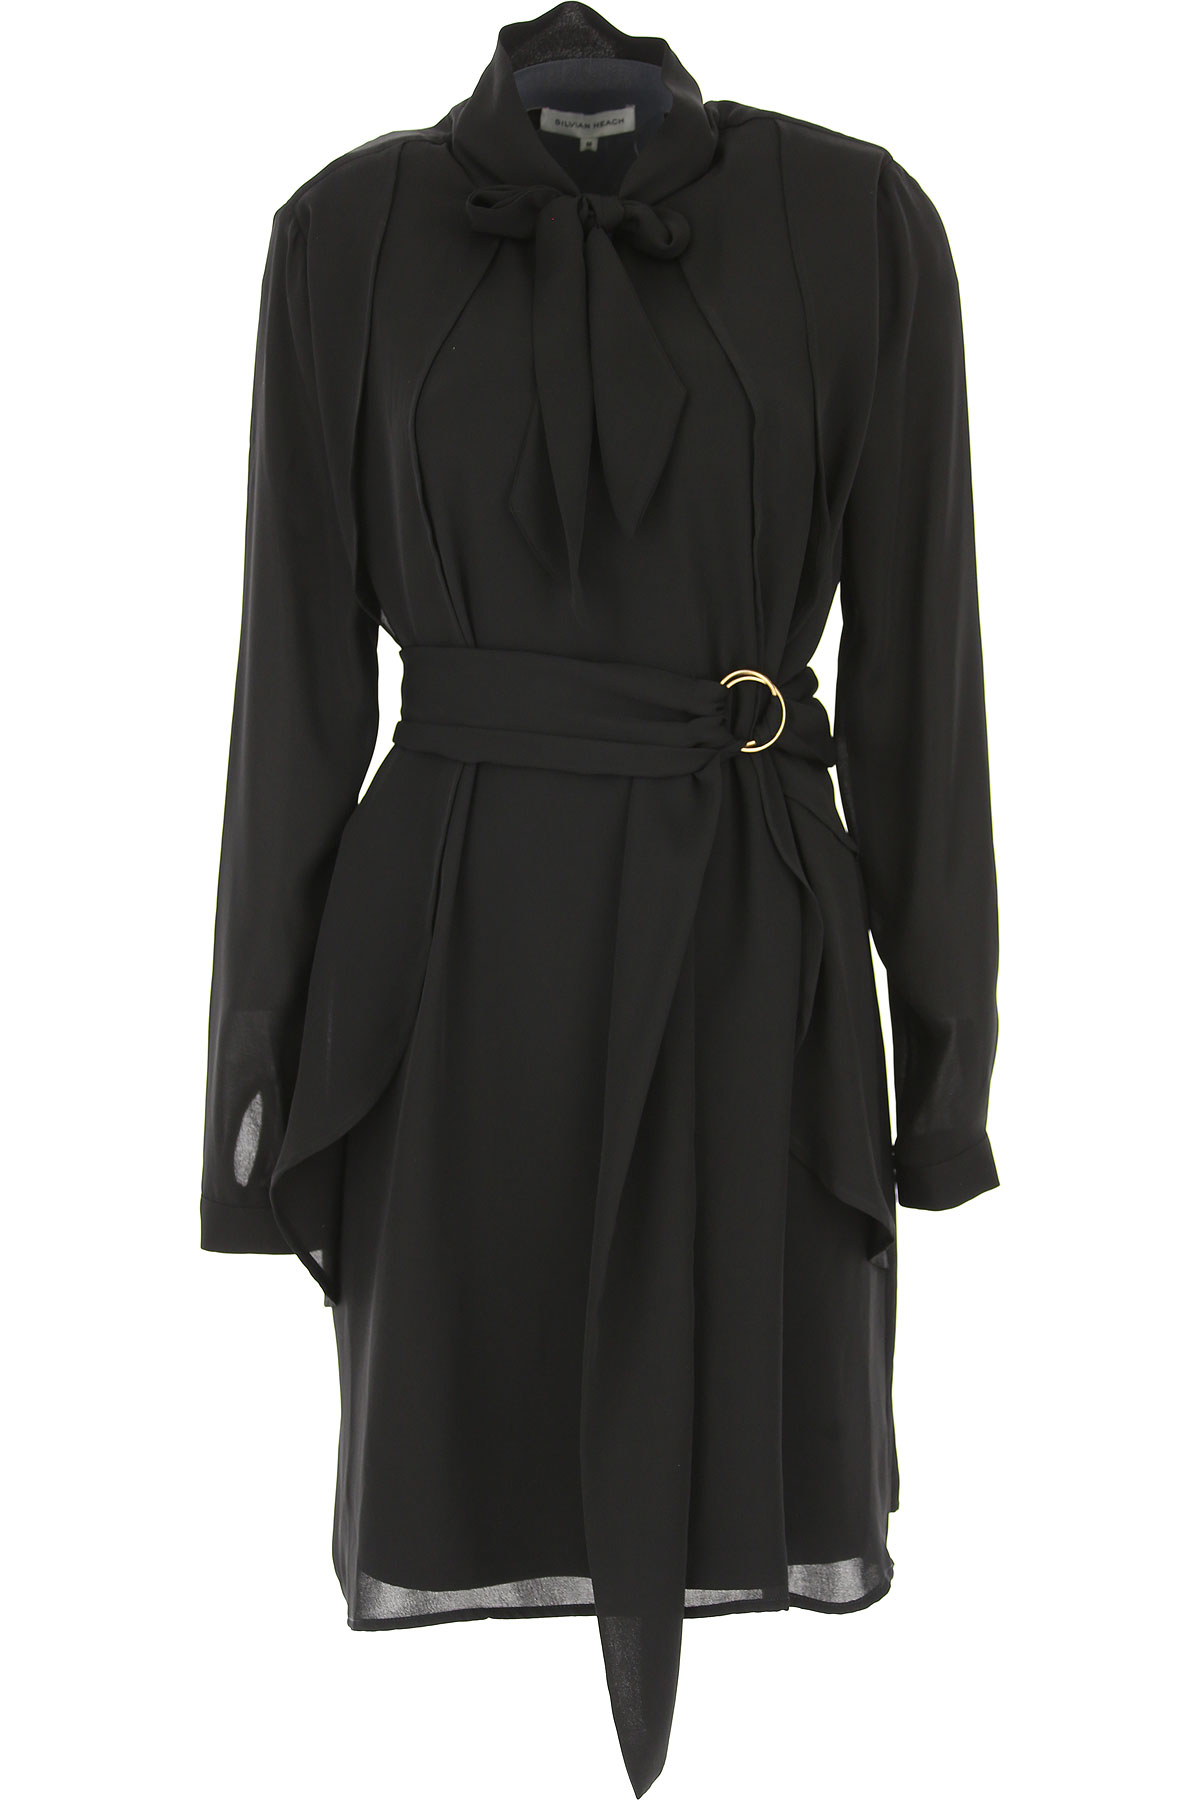 Image of Silvian Heach Dress for Women, Evening Cocktail Party, Black, polyester, 2017, 10 4 6 8